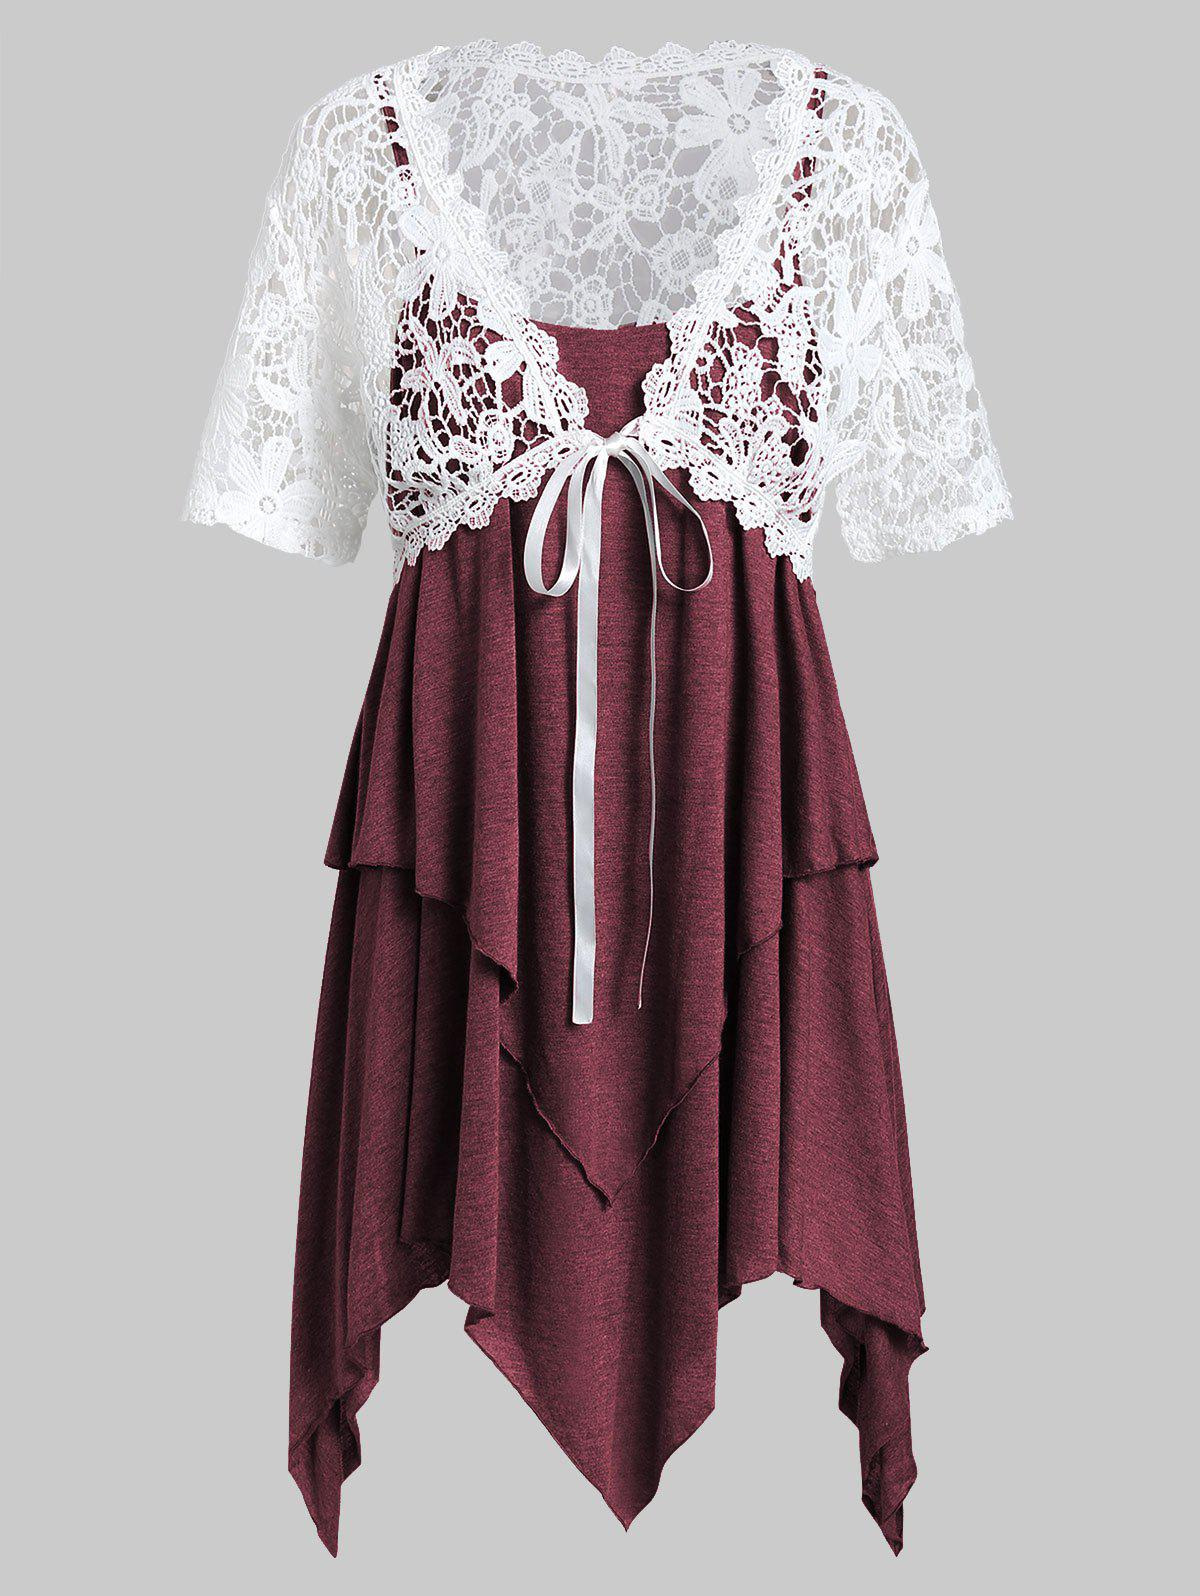 Plus Size Lace Top With Layered Handkerchief Cami Top - RED WINE 2X